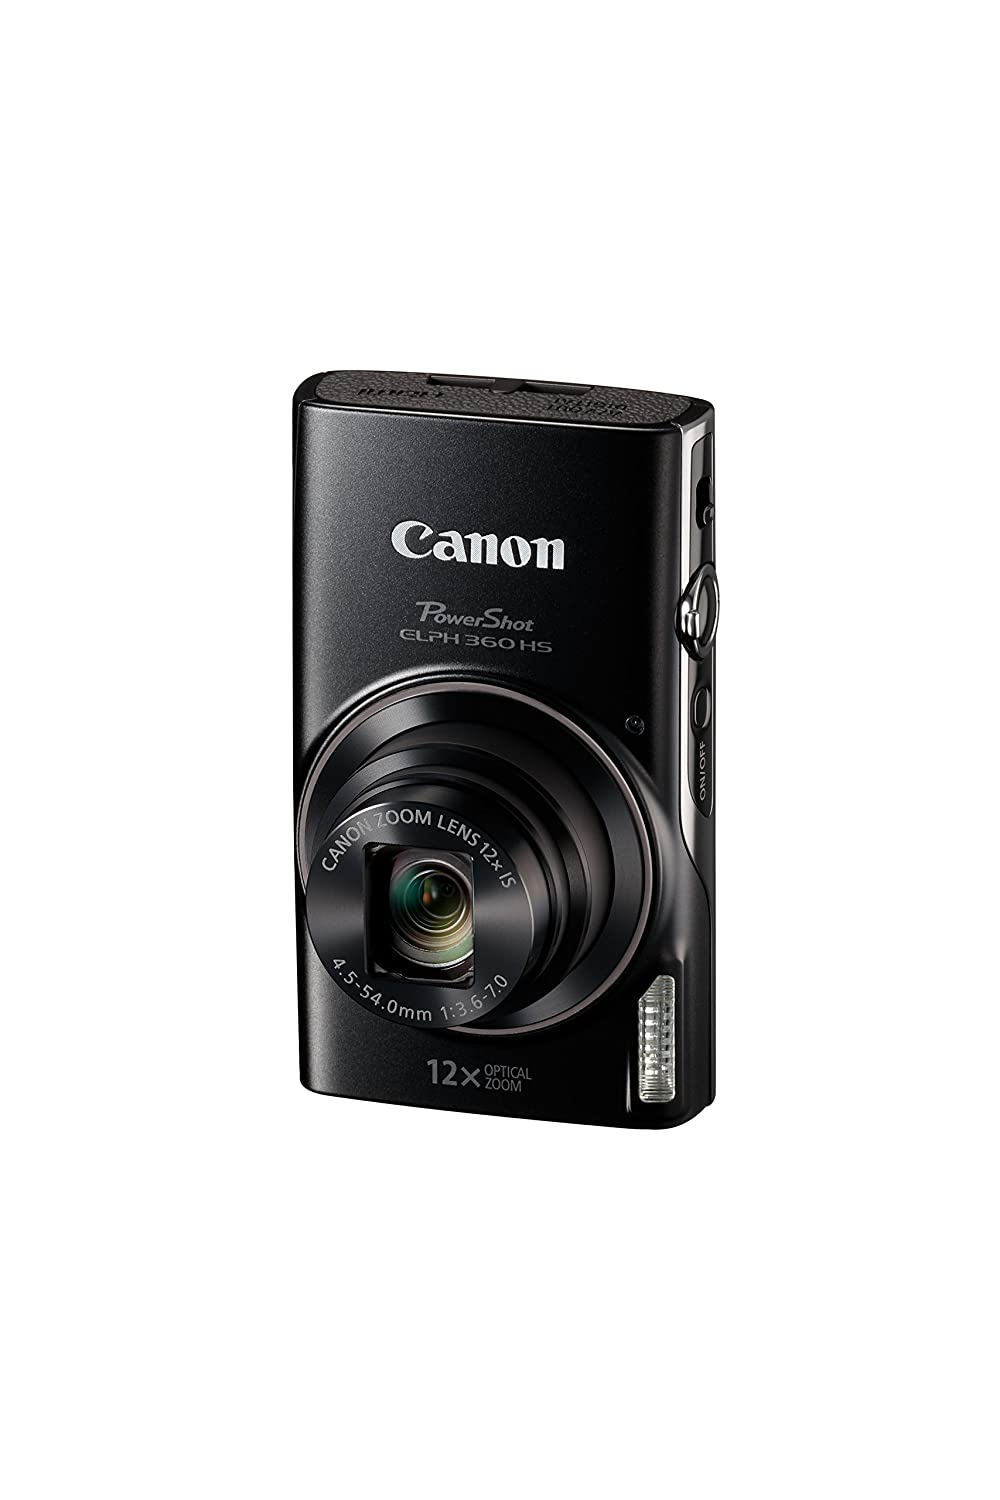 Canon PowerShot ELPH 360 HS (Black) with 12x Optical Zoom and Built-In Wi-Fi